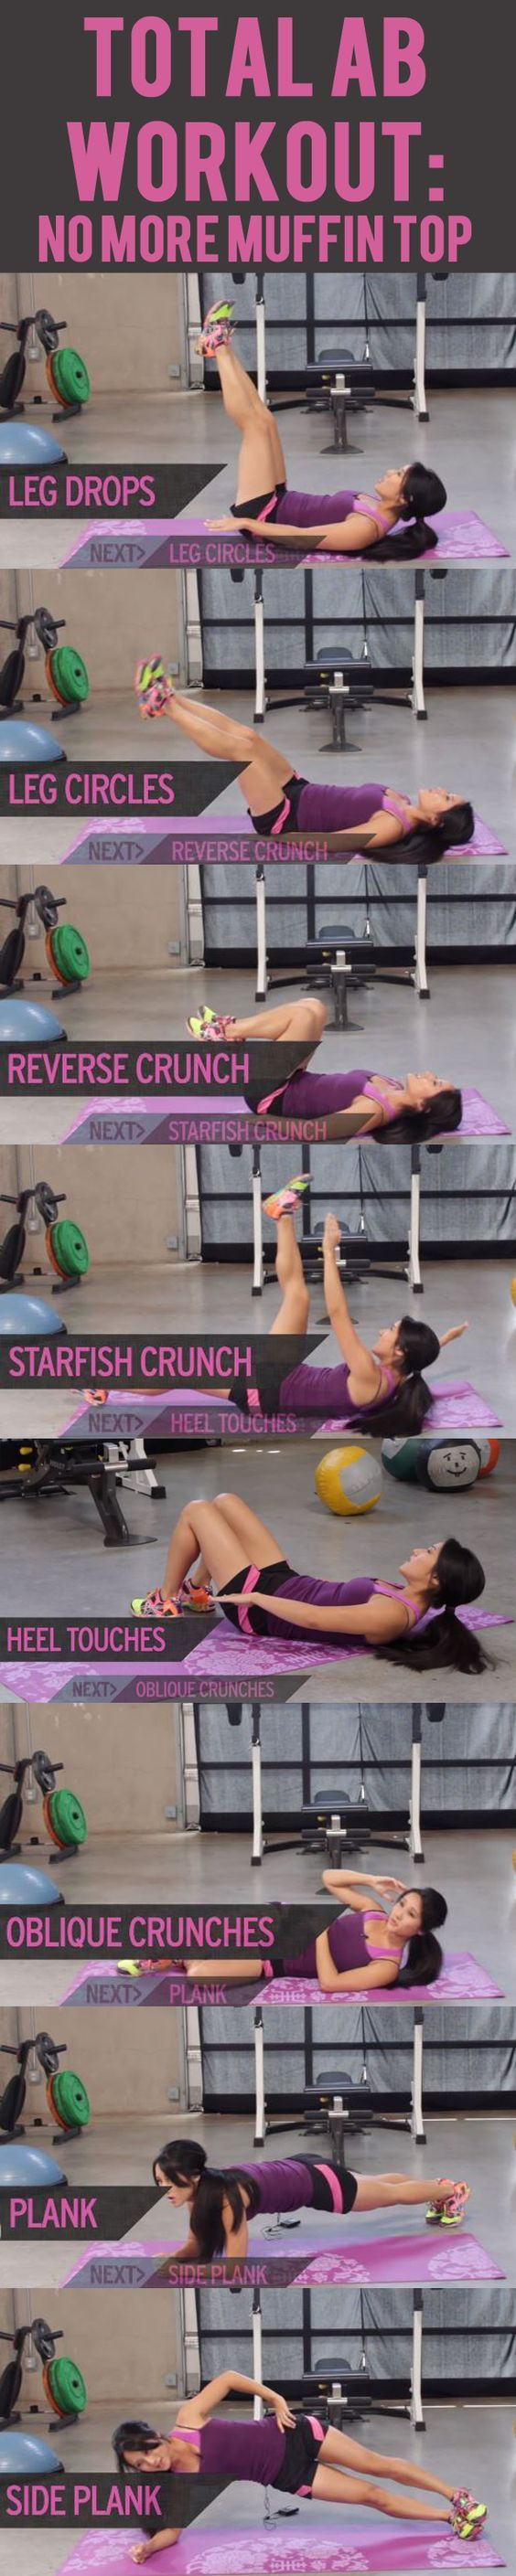 This workout will show you some of the best ab exercises for toning and slimming…